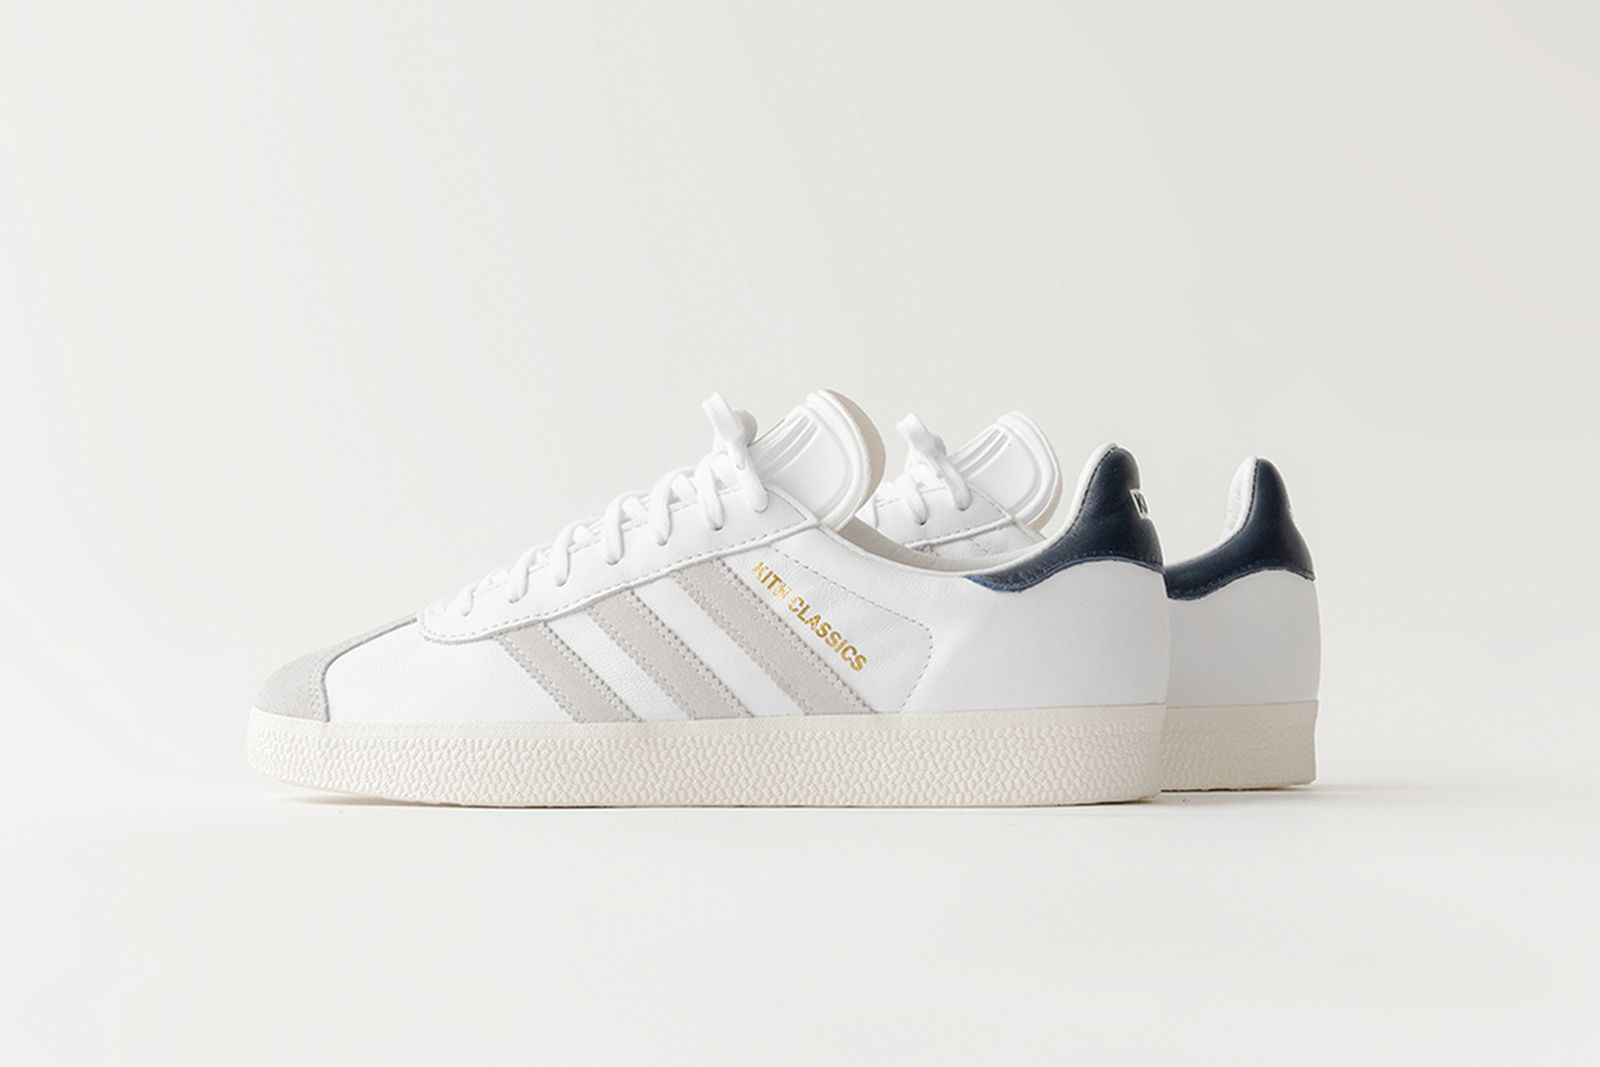 kith-adidas-summer-2021-release-info-23